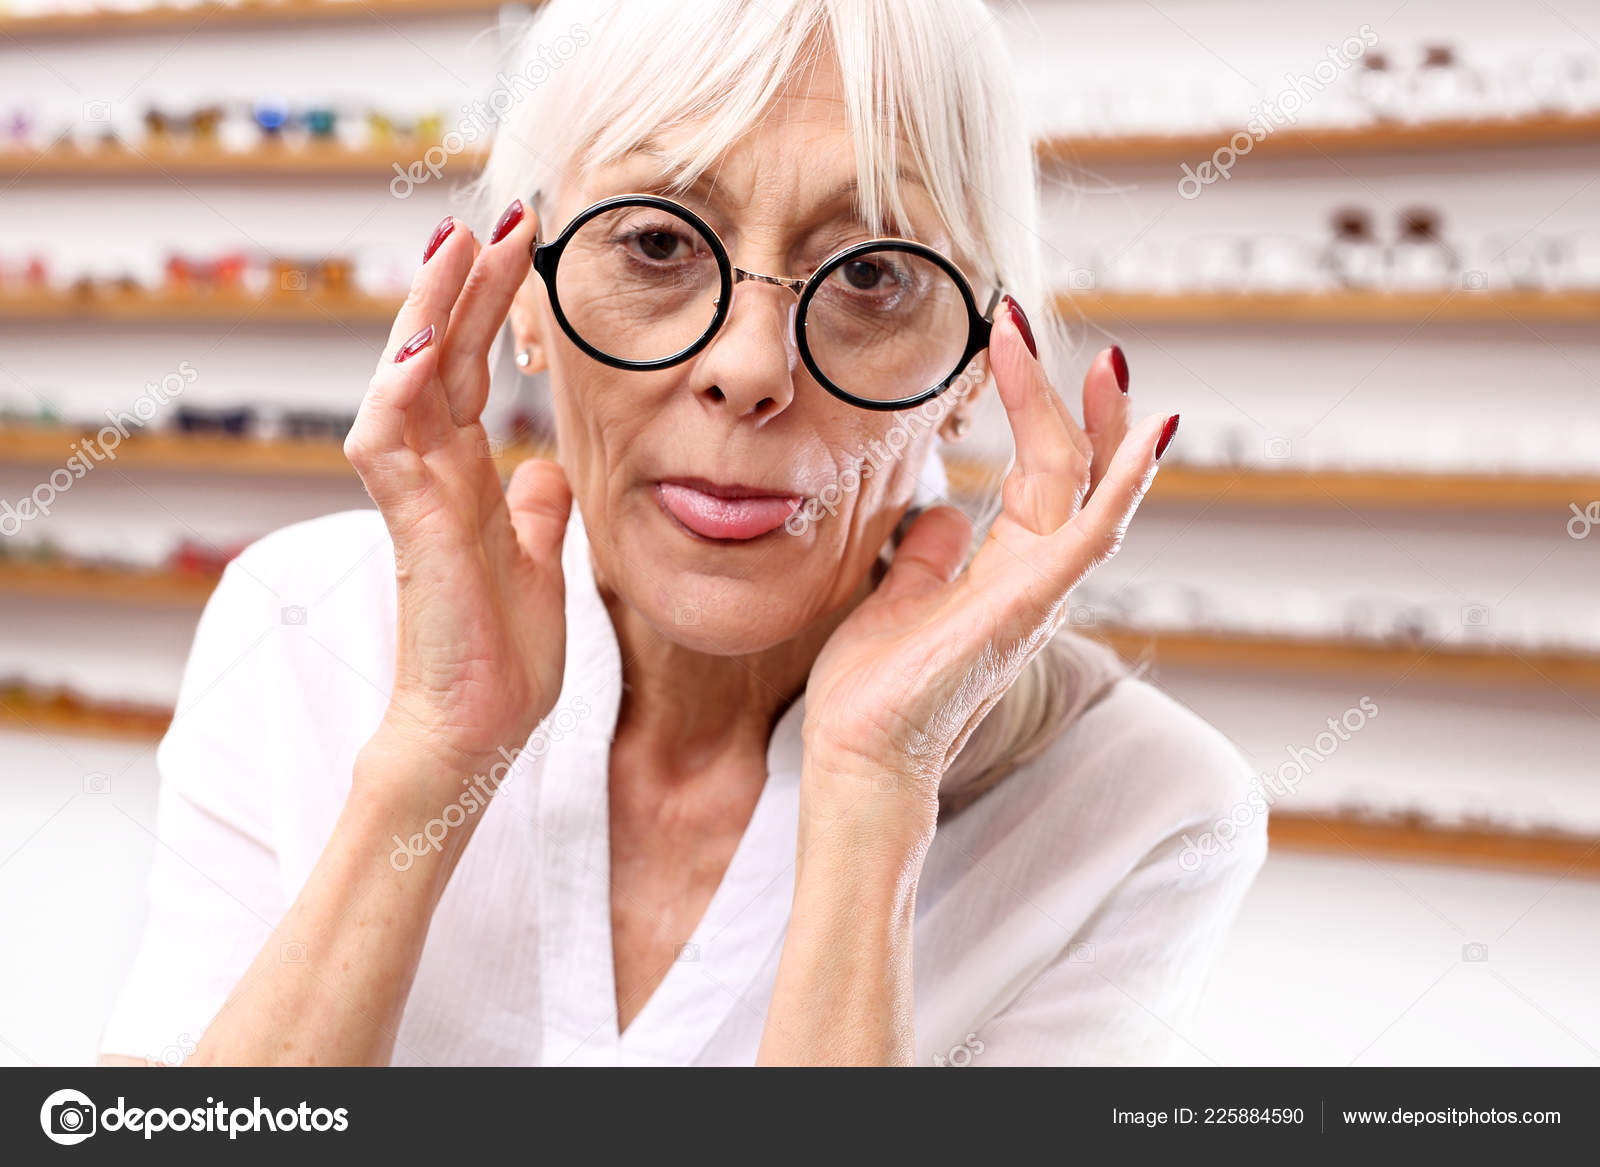 Salon Senior Senior Woman Optical Salon Chooses Eyeglass Frames Stock